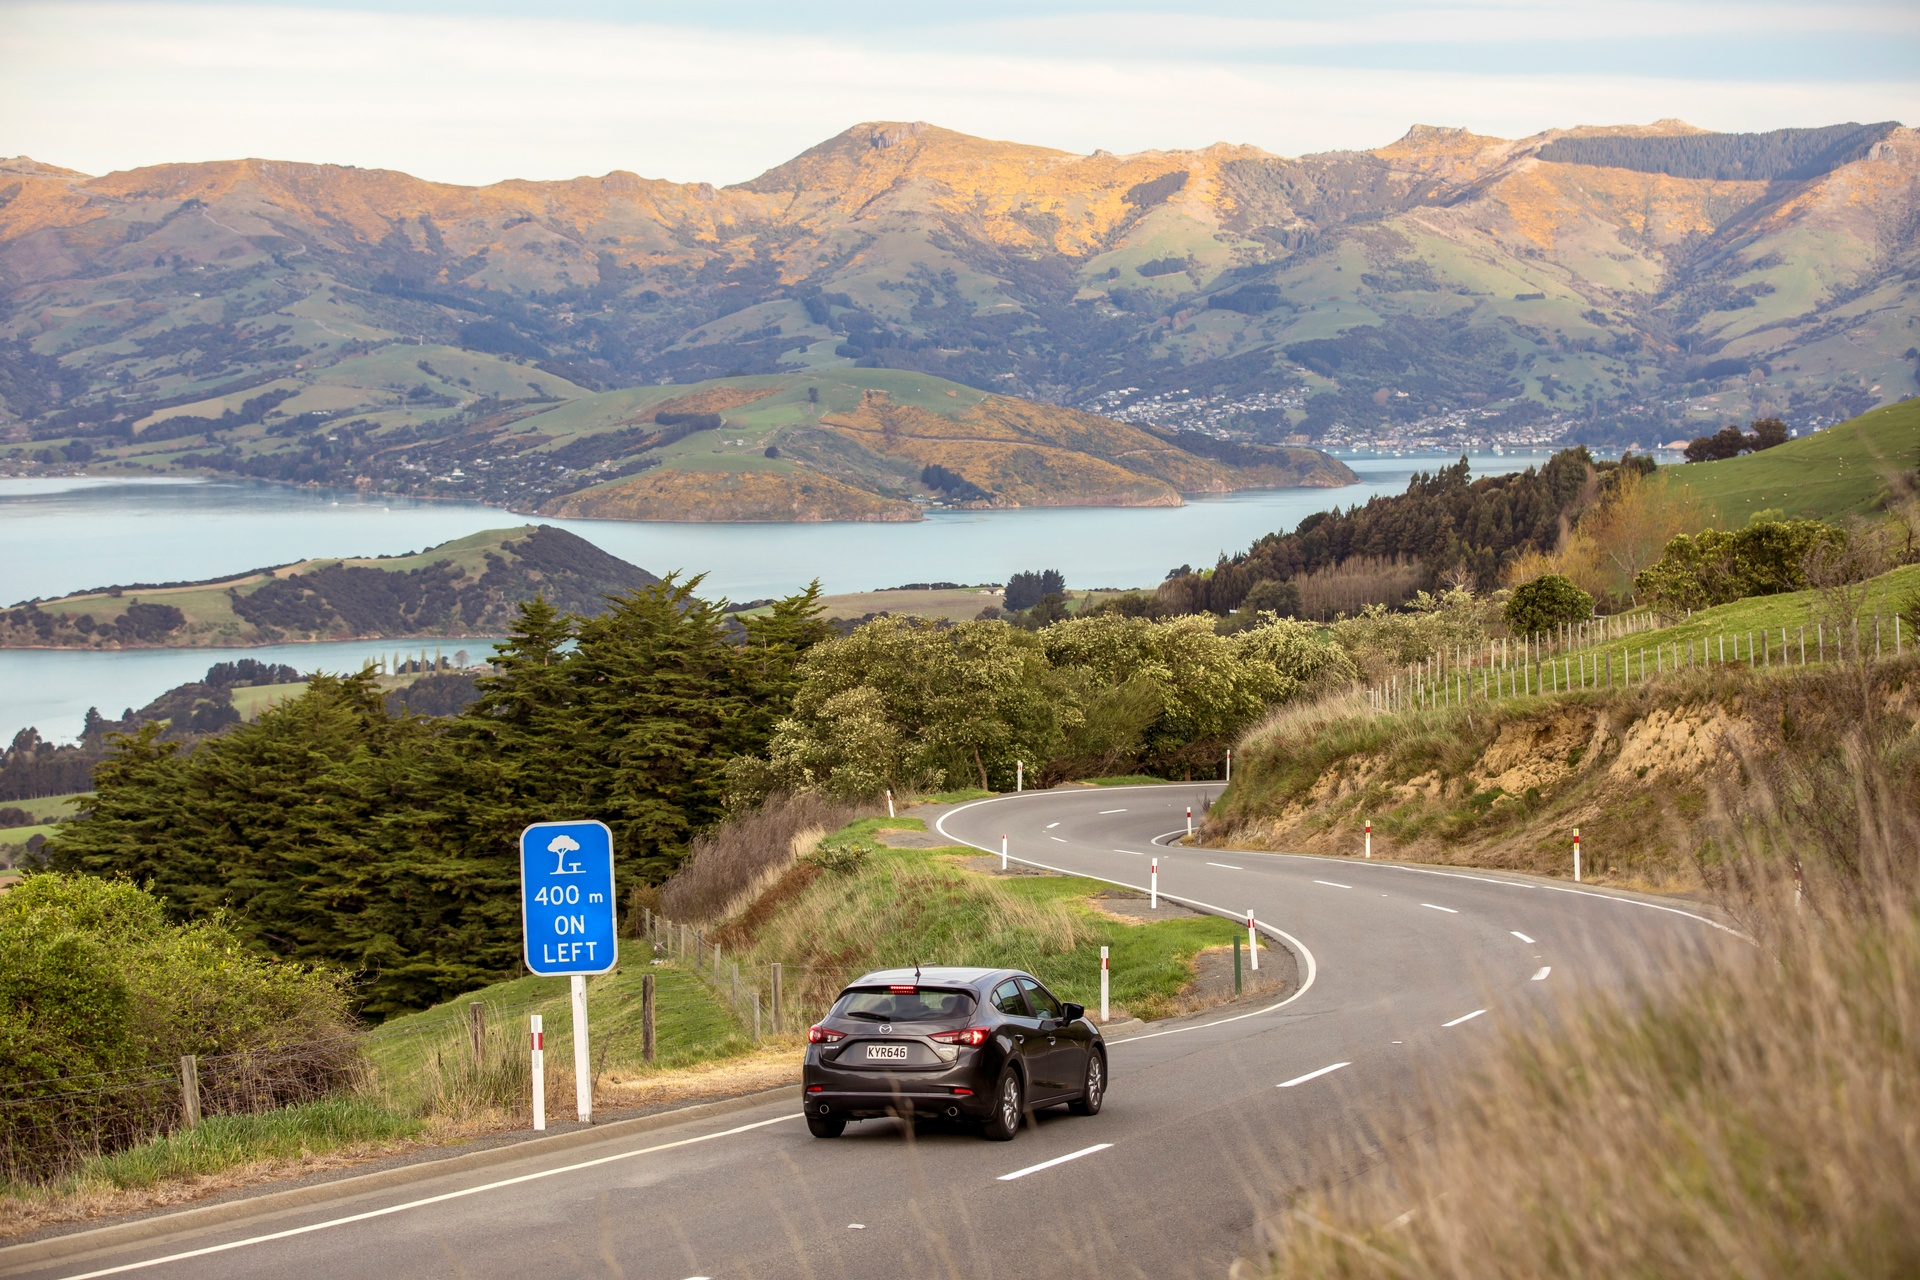 Akaroa, New Zealand - Photo by Graeme Murray